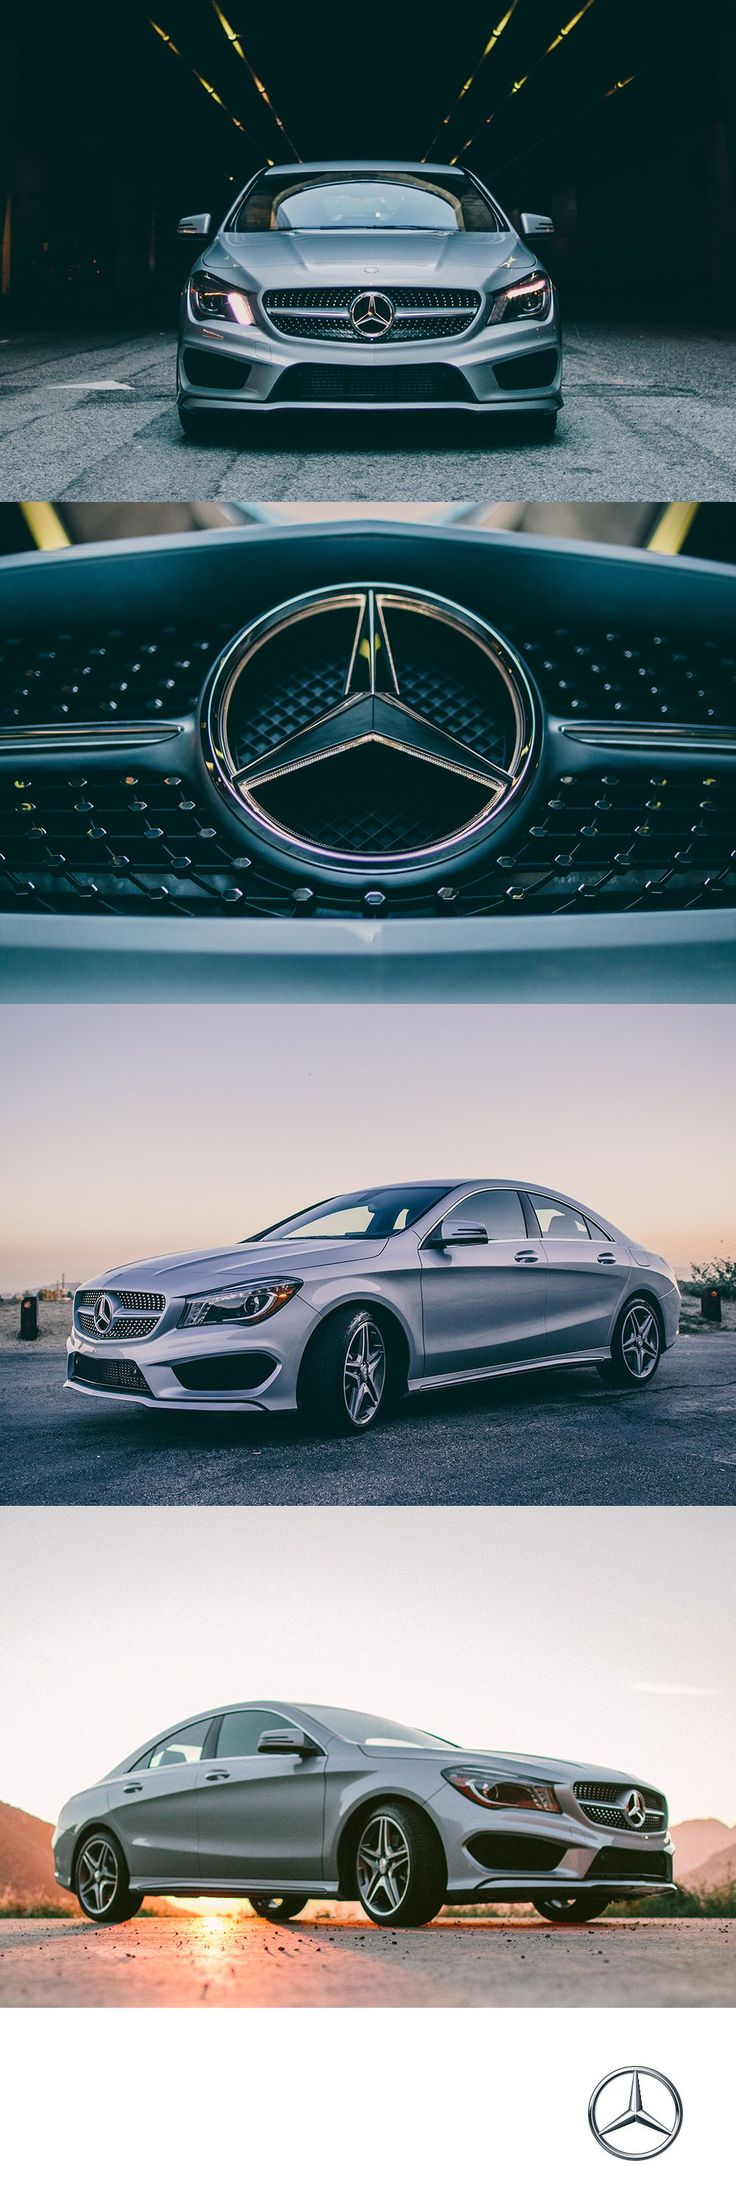 The CLA 250 is hard to refuse and even harder to ignore.  #MBPhotoCredit: Andres Tardio